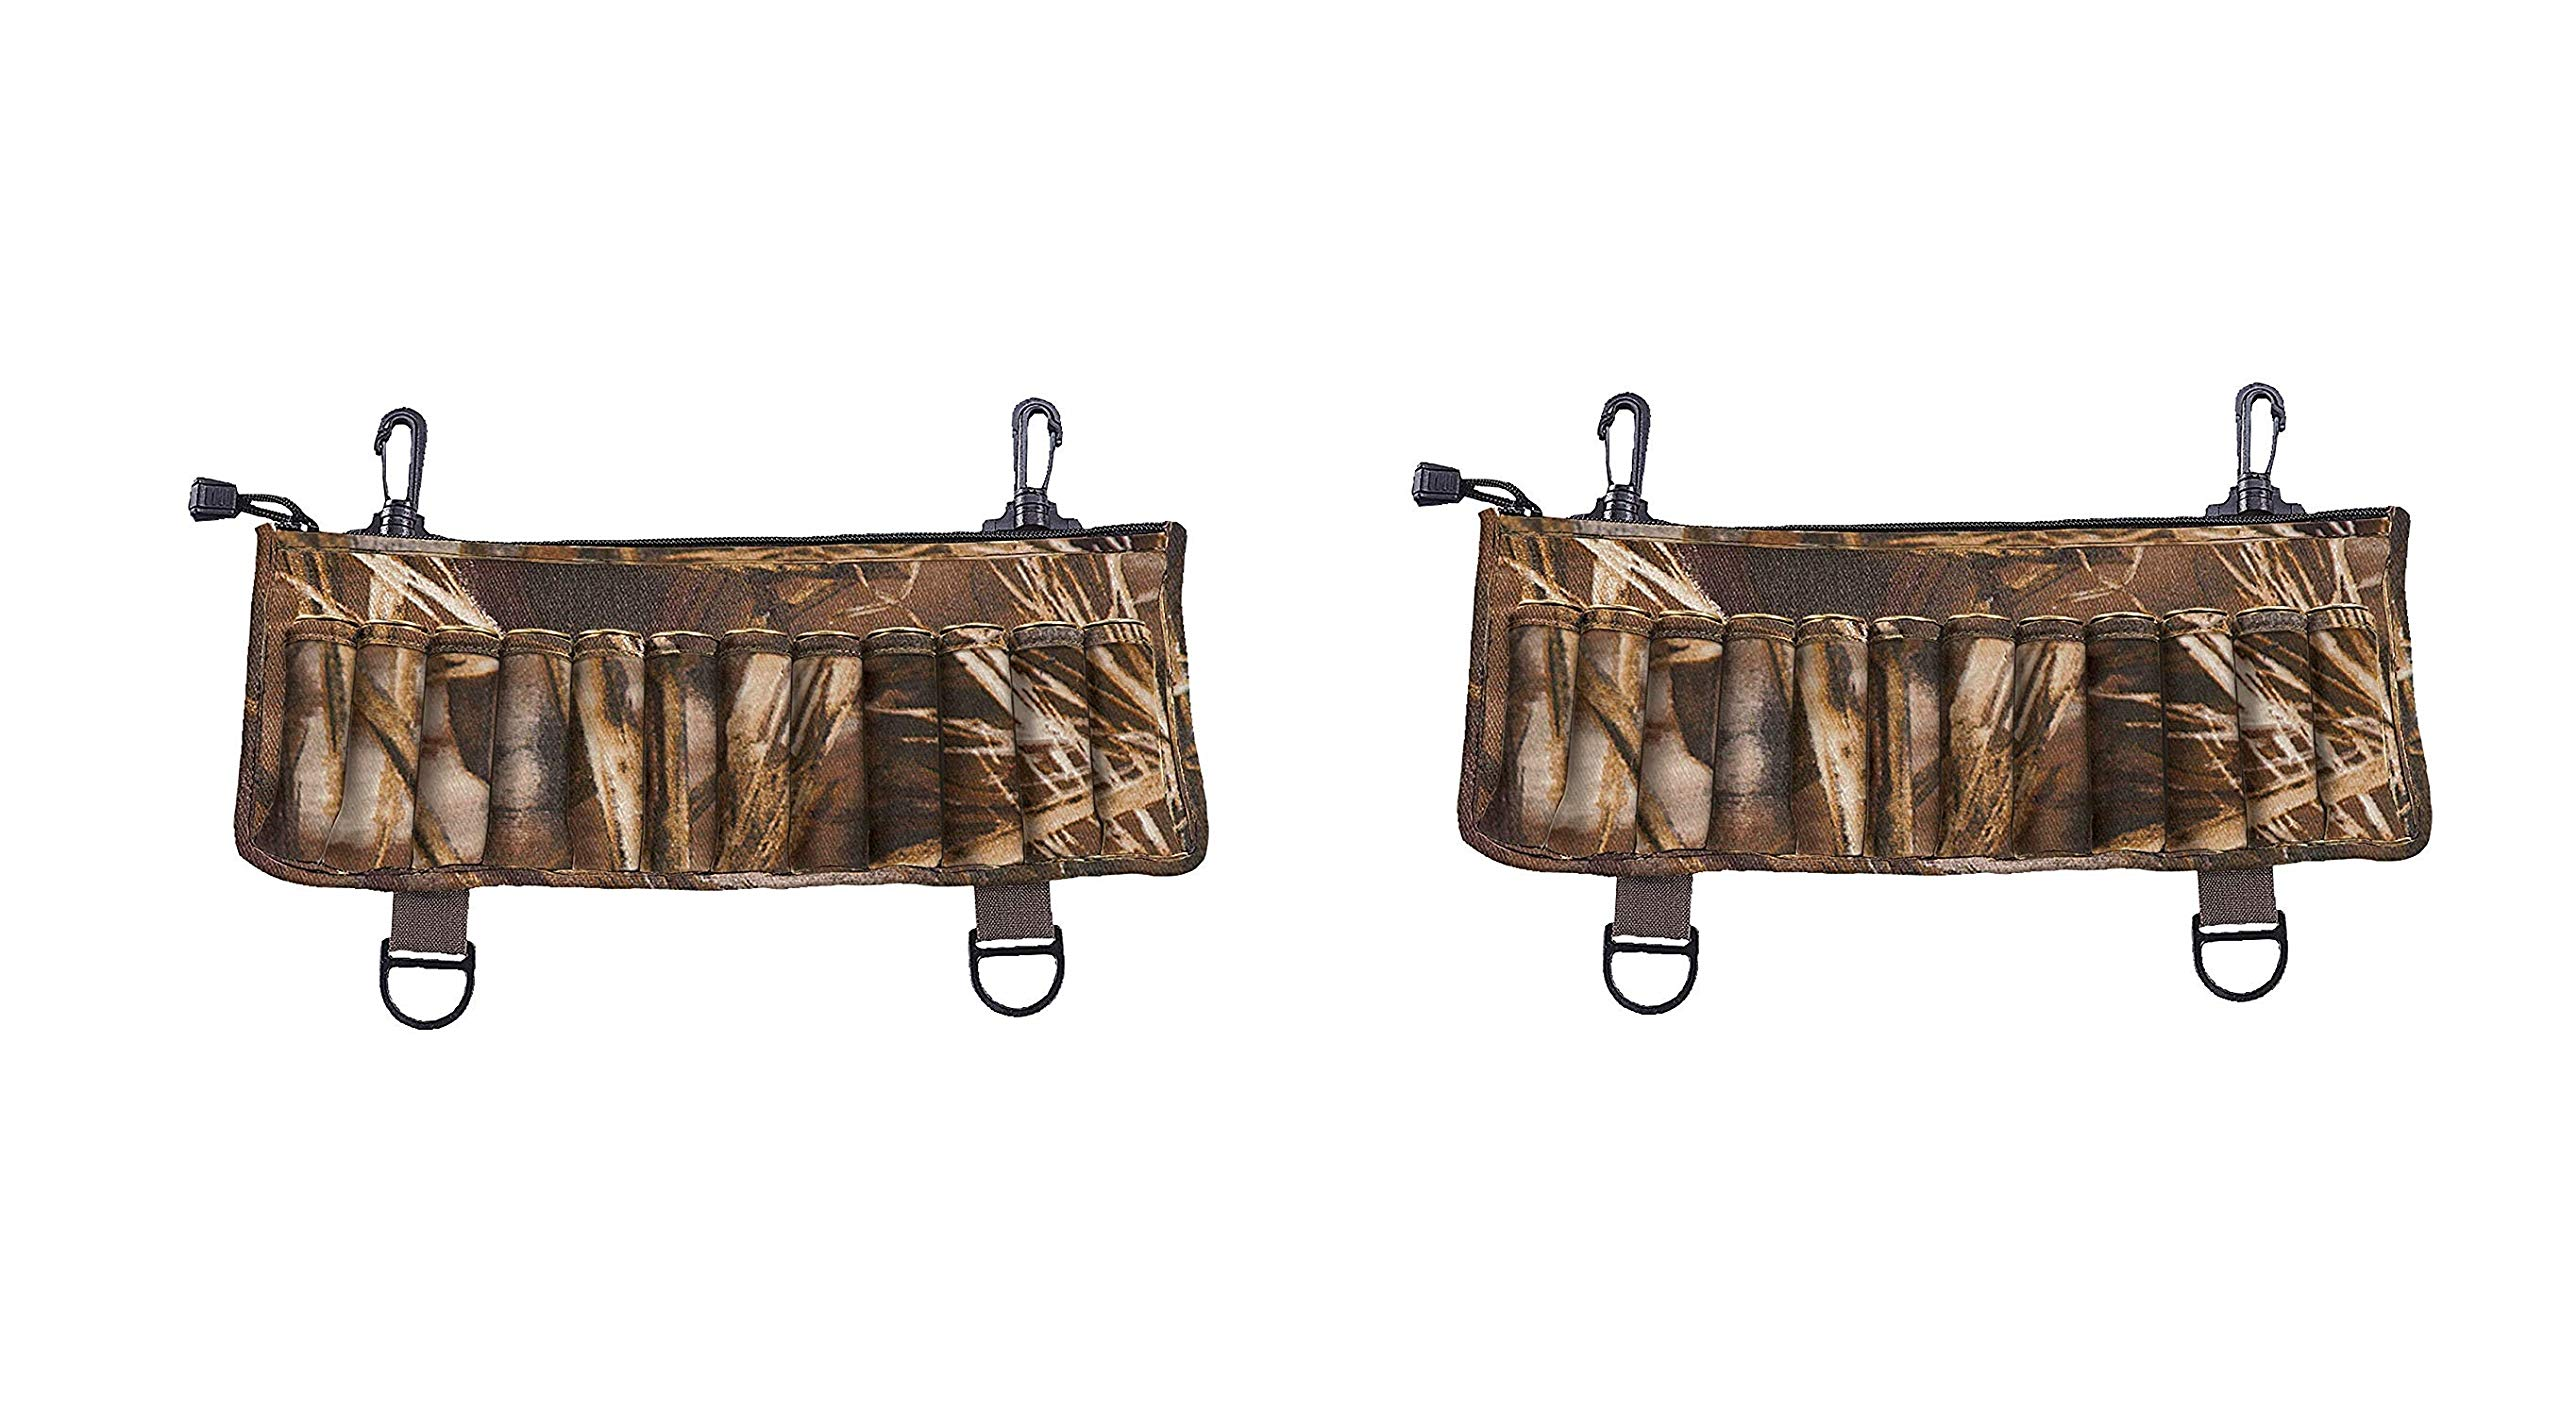 Allen Neoprene Clip-On 24 Shotshell Holder, Realtree MAX-5 Camo (Pack of 2) by Allen Company